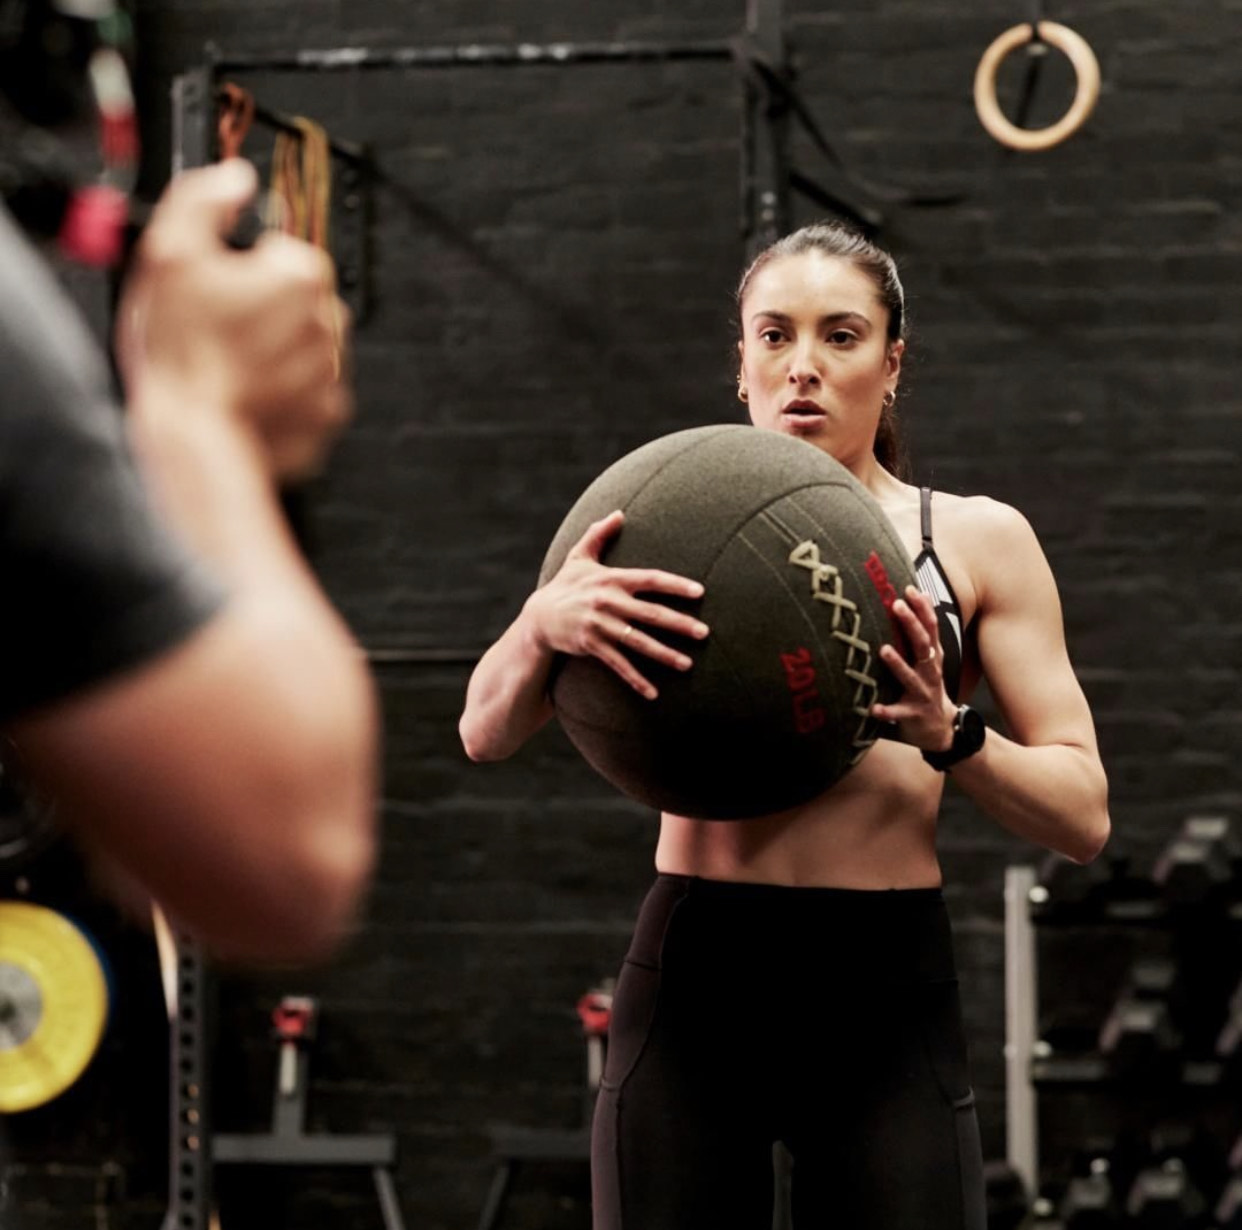 Montana holding a medicine ball during her PMRG fitness campaign